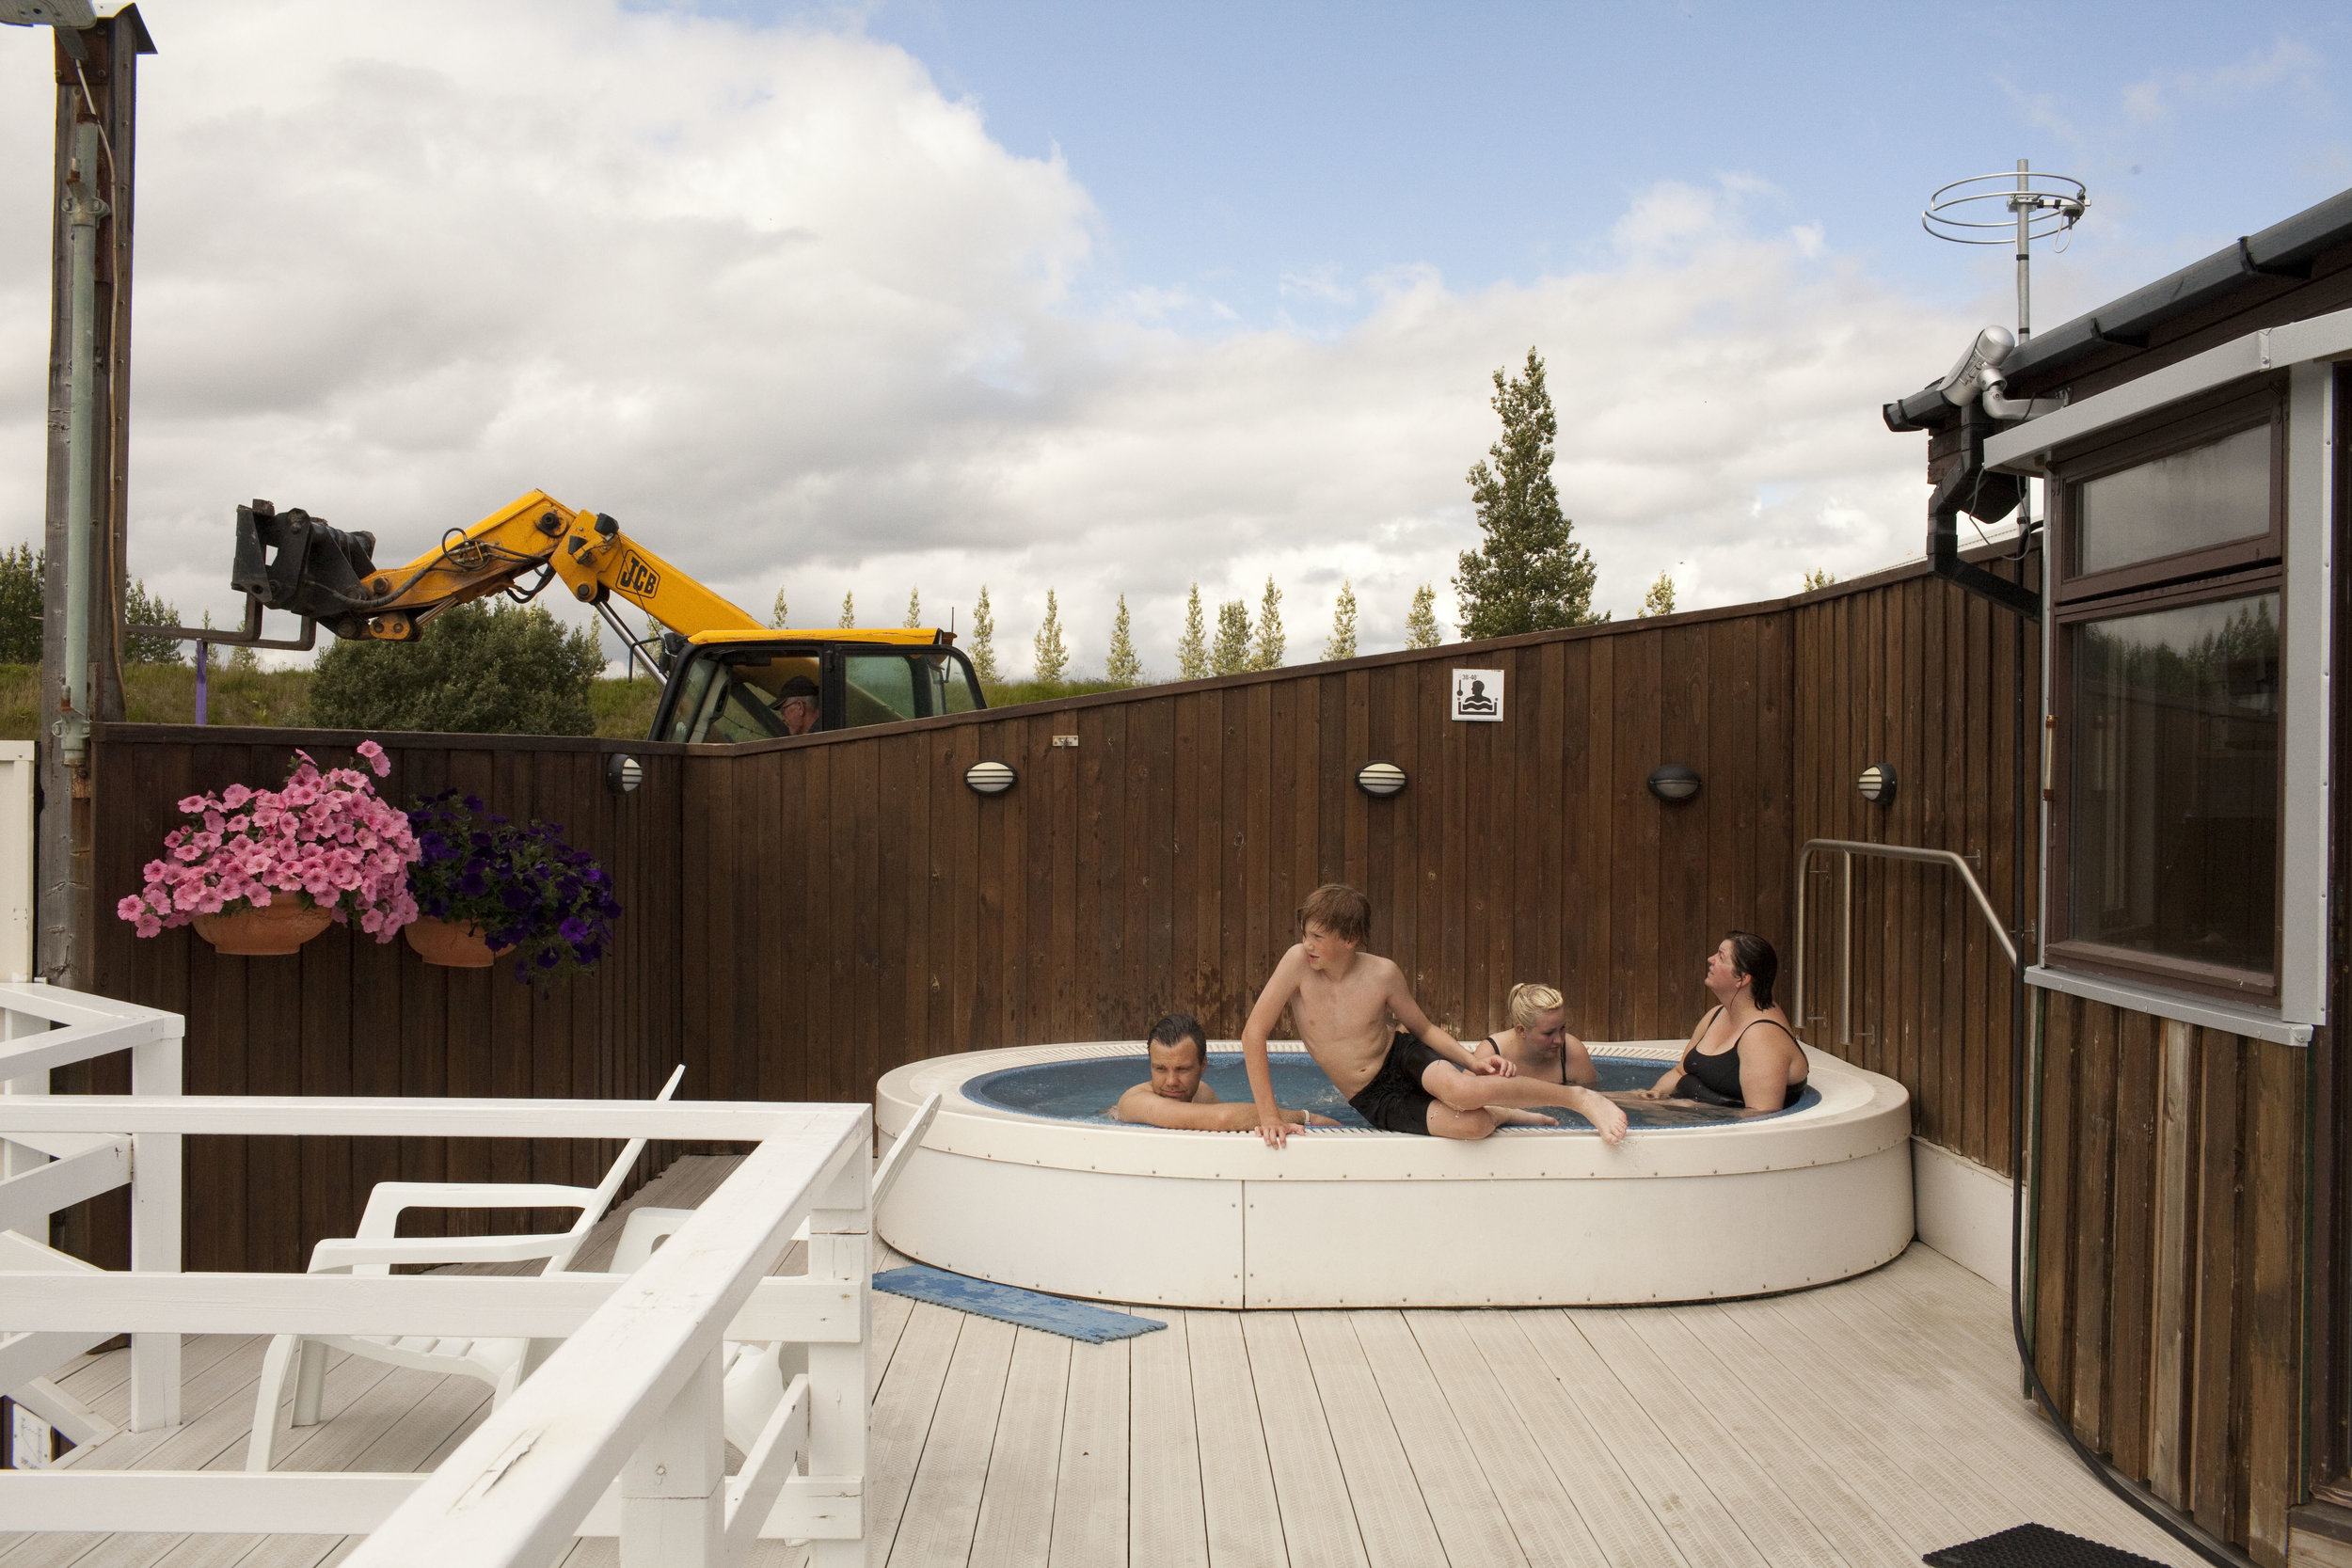 A family soaks in the hot tub at a pool in Fludir, a small Icelandic town of around 400 people.